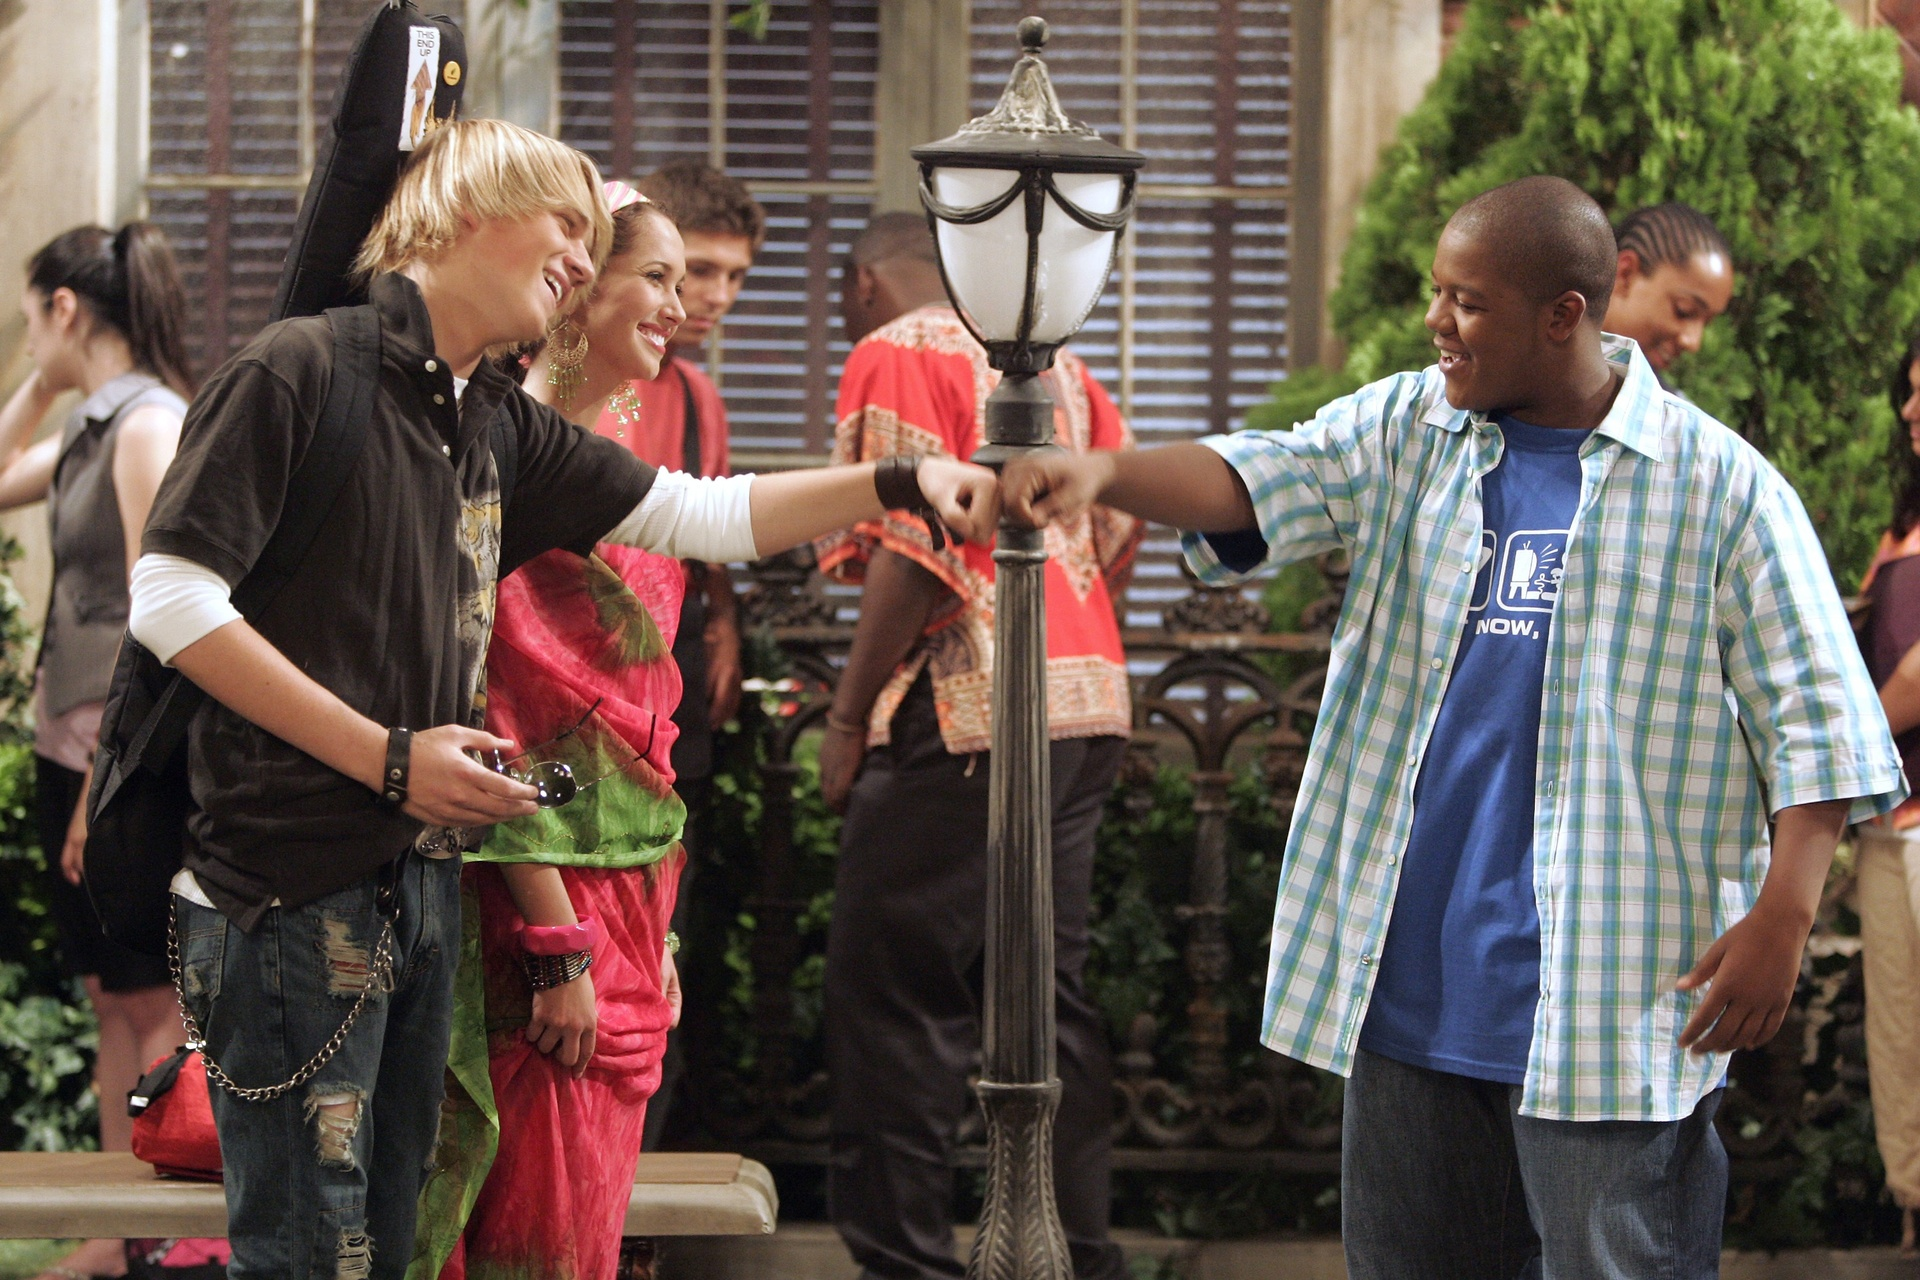 cory in the house cast